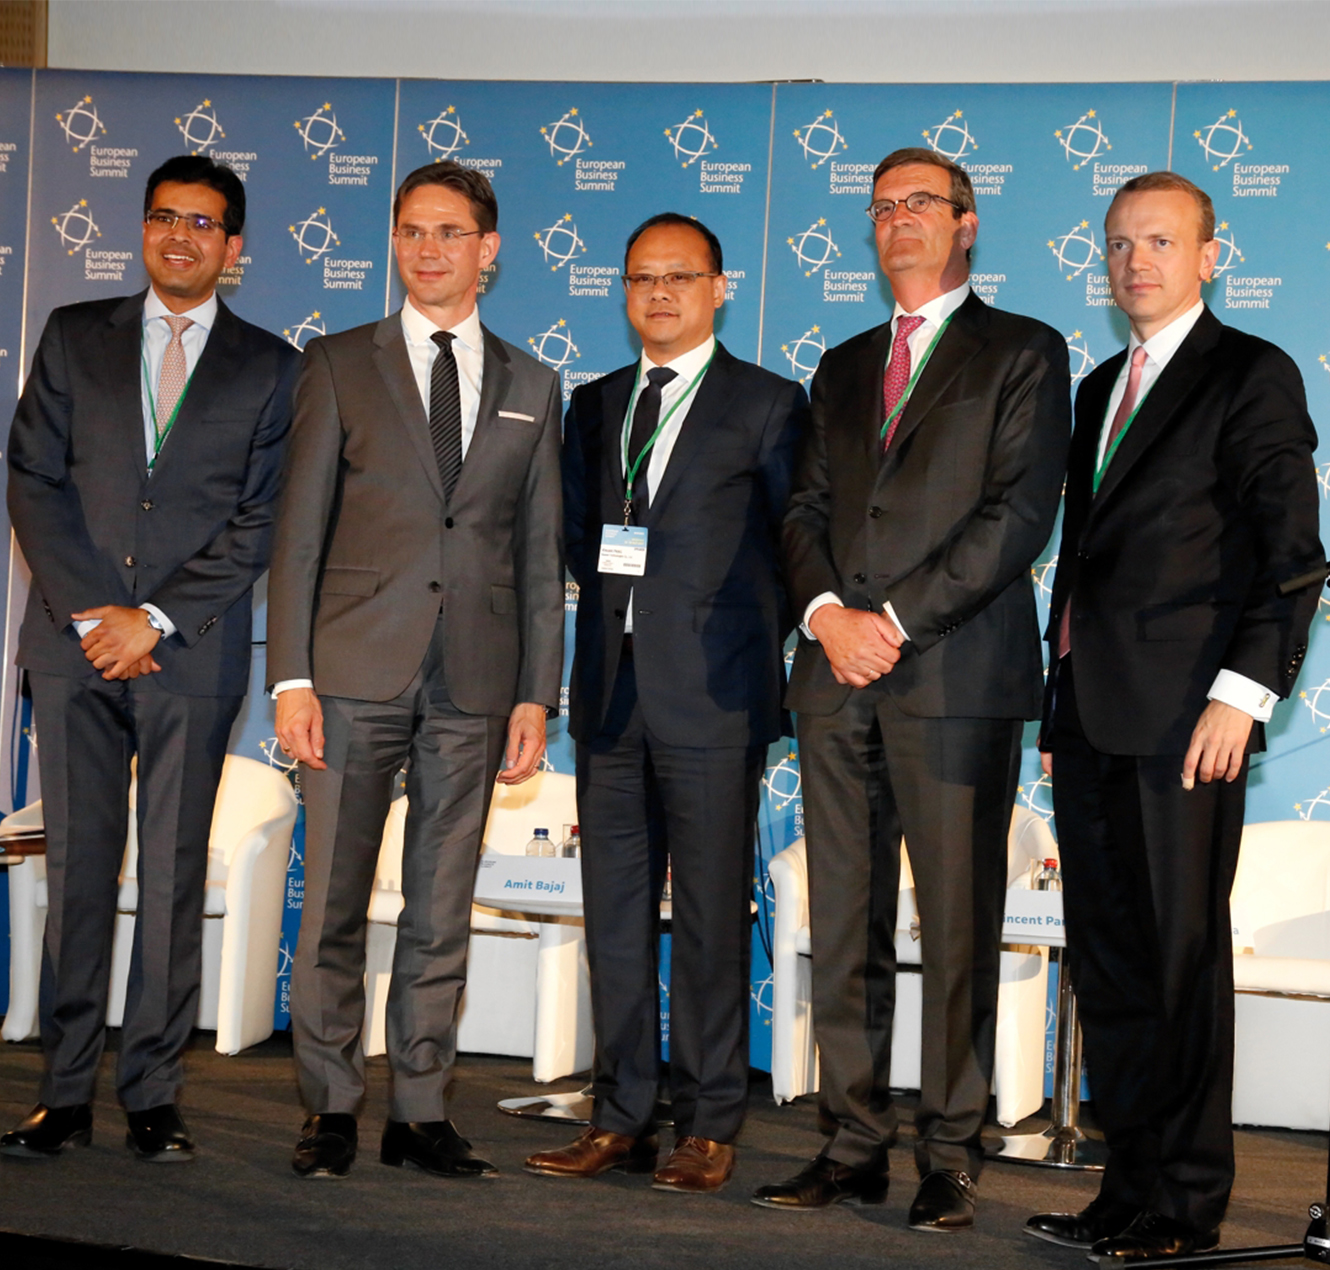 TCS highlights the role of digital in Europe's future economy